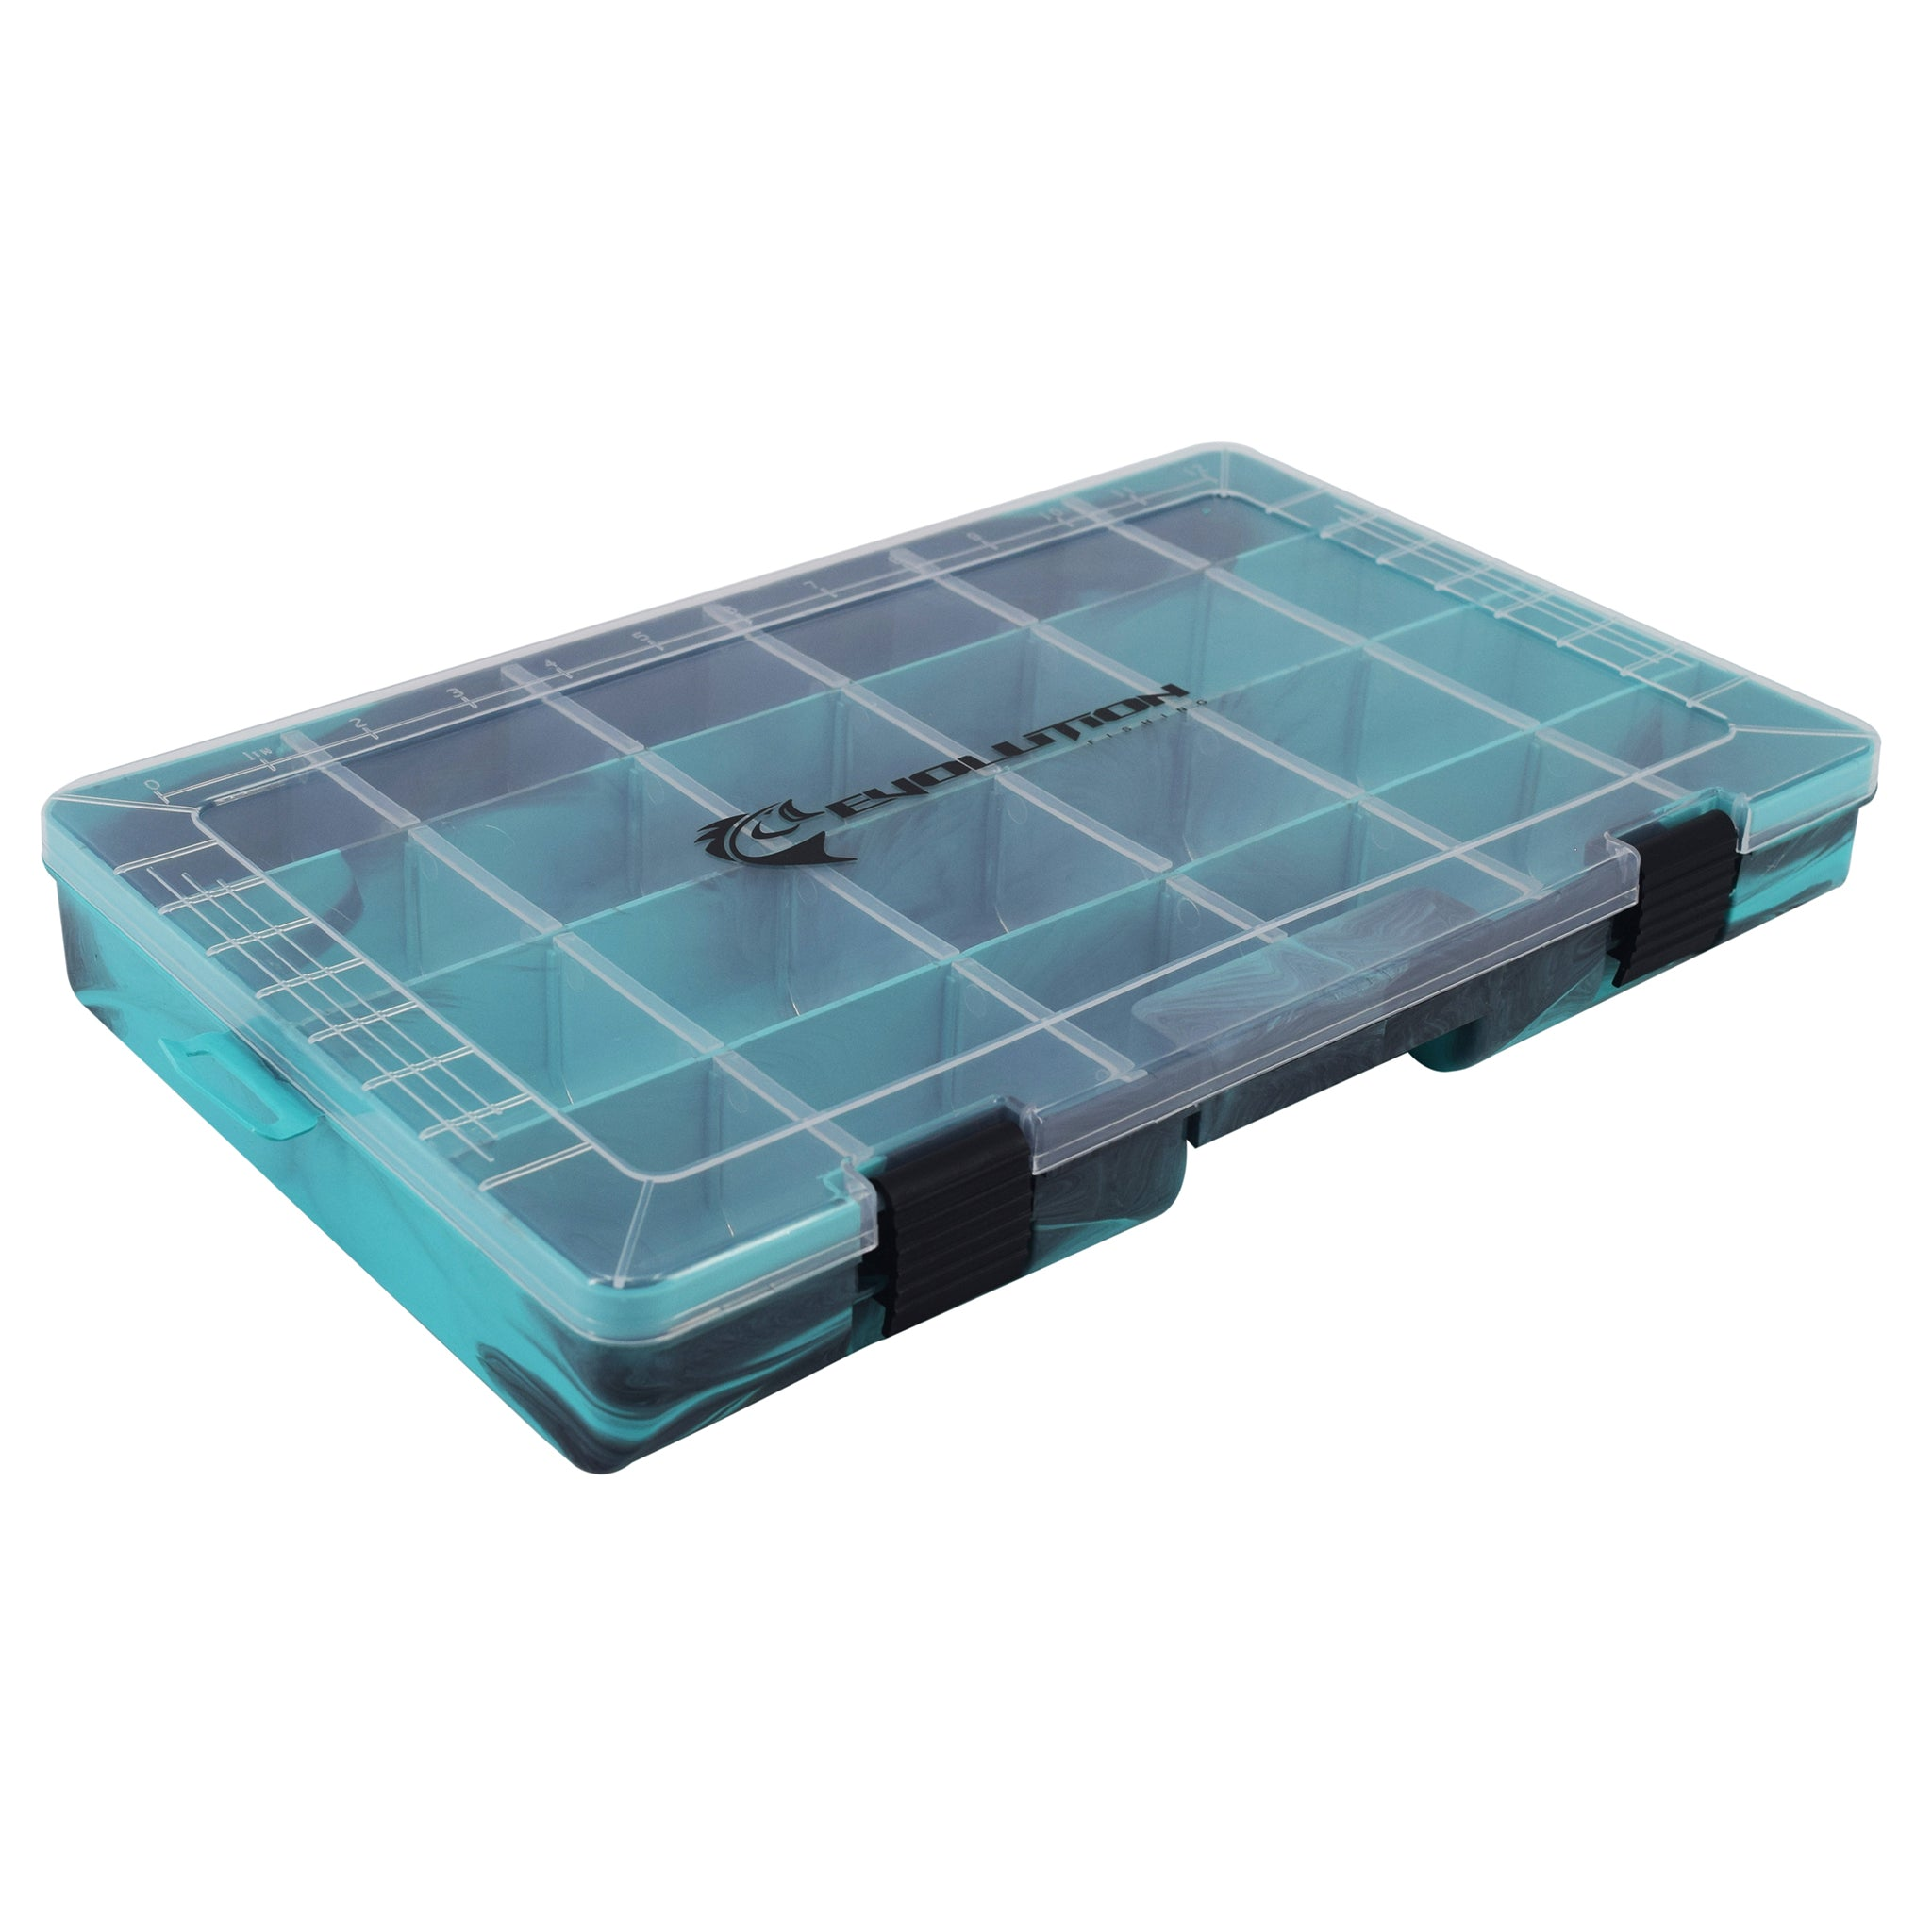 Drift Series 3700 Colored Tackle Tray - Multiple Colors Available